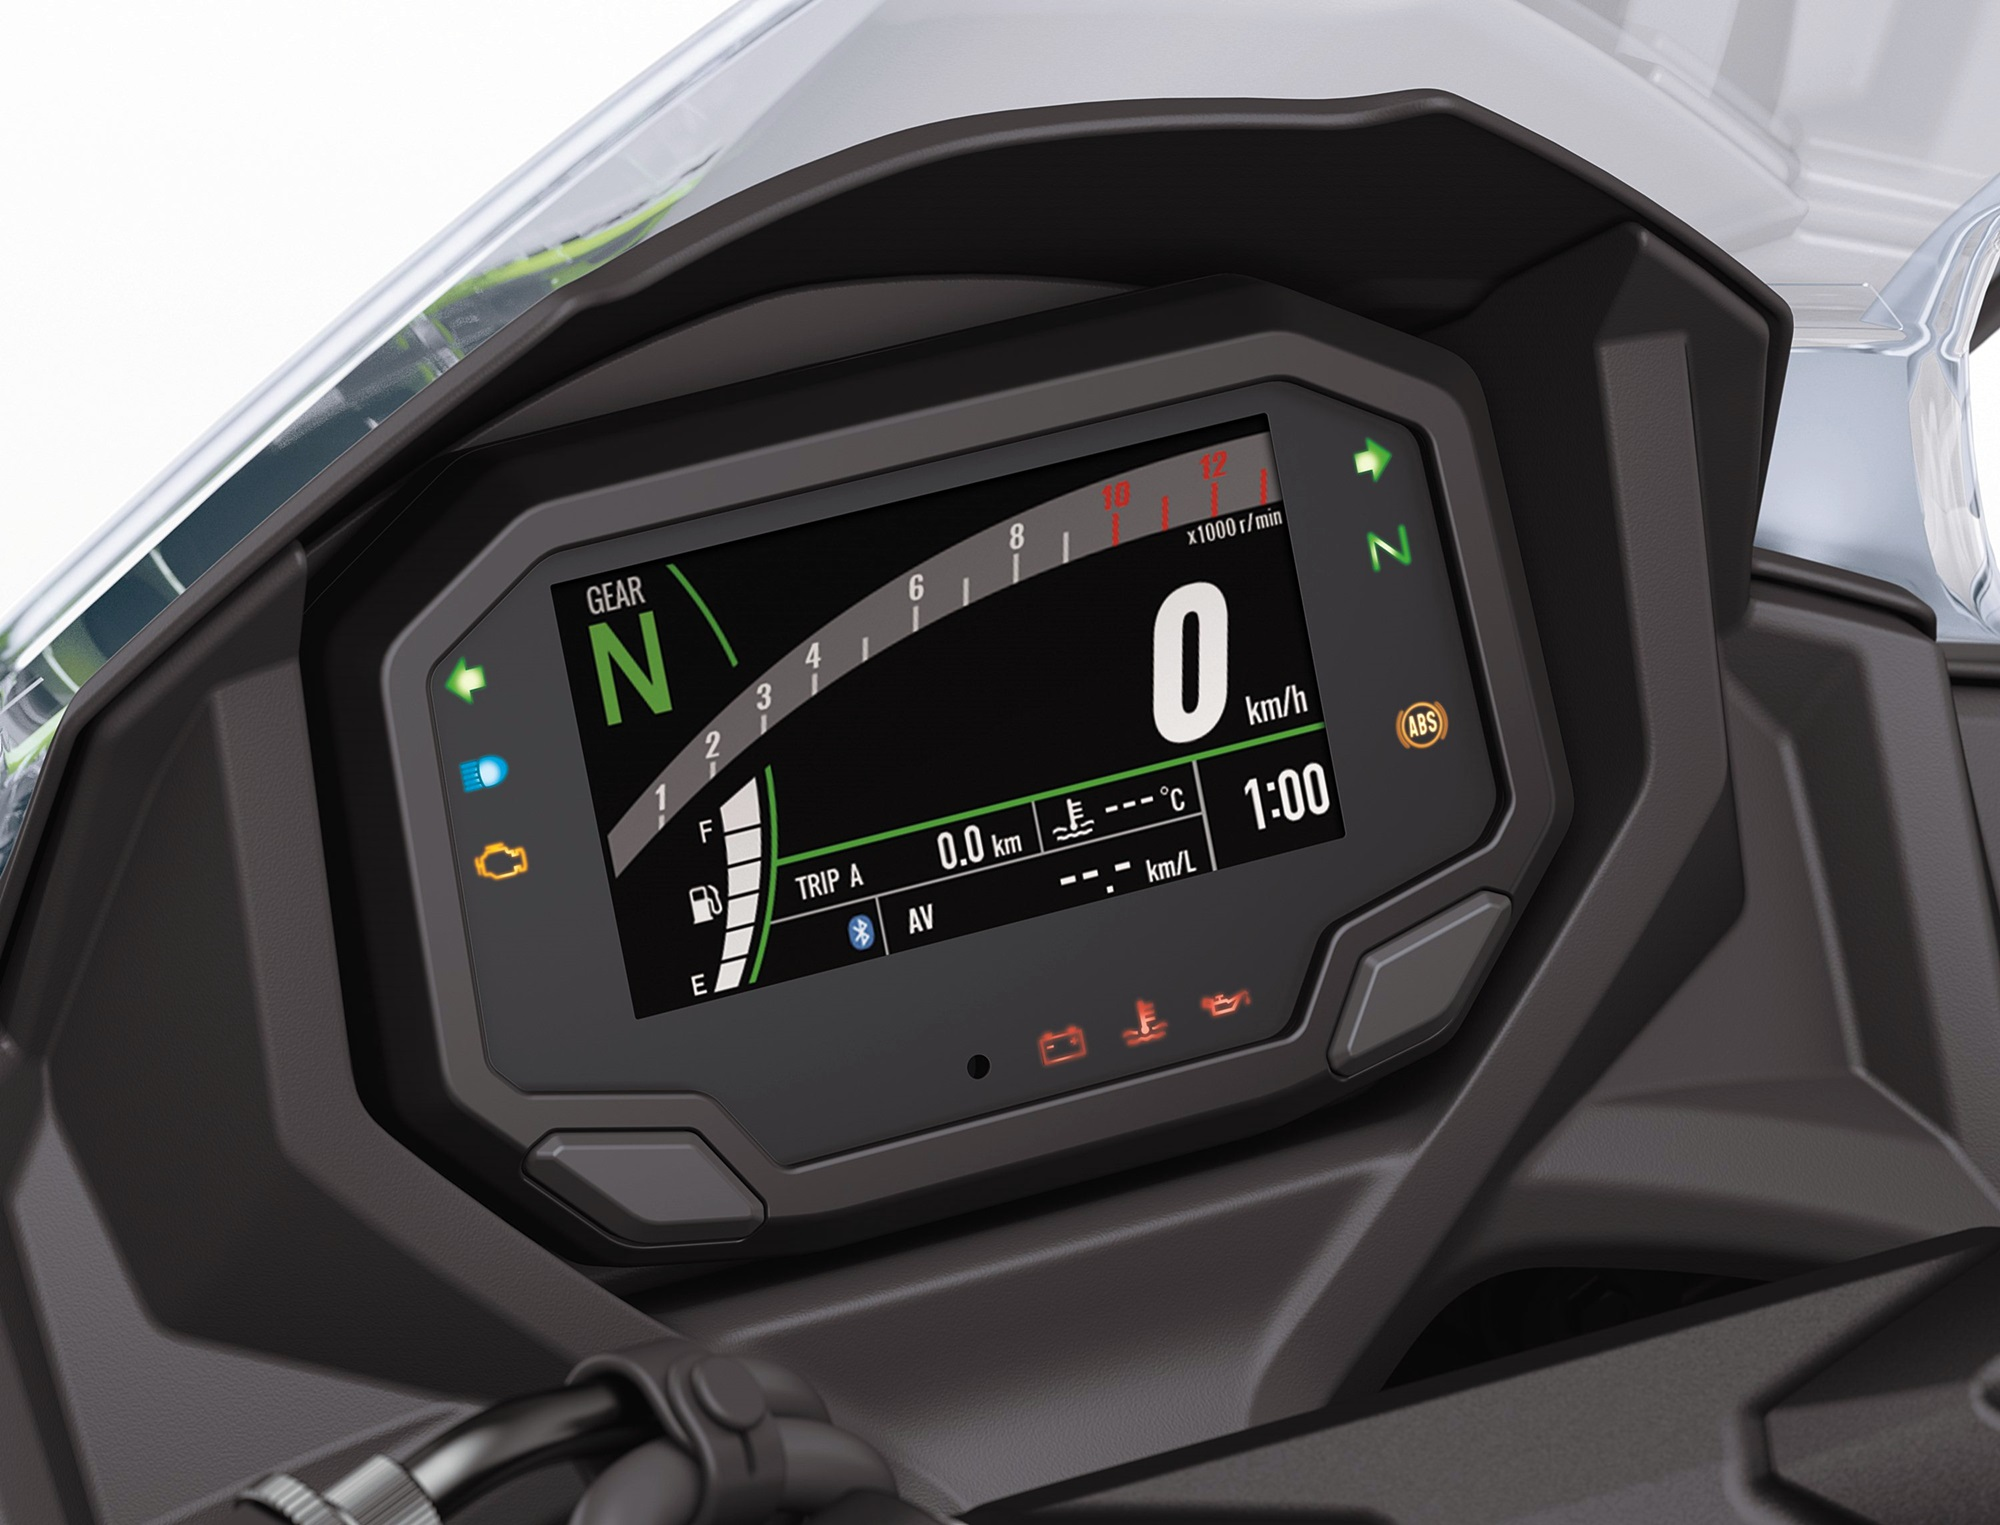 2020 Kawasaki Ninja 650 instrument display meters